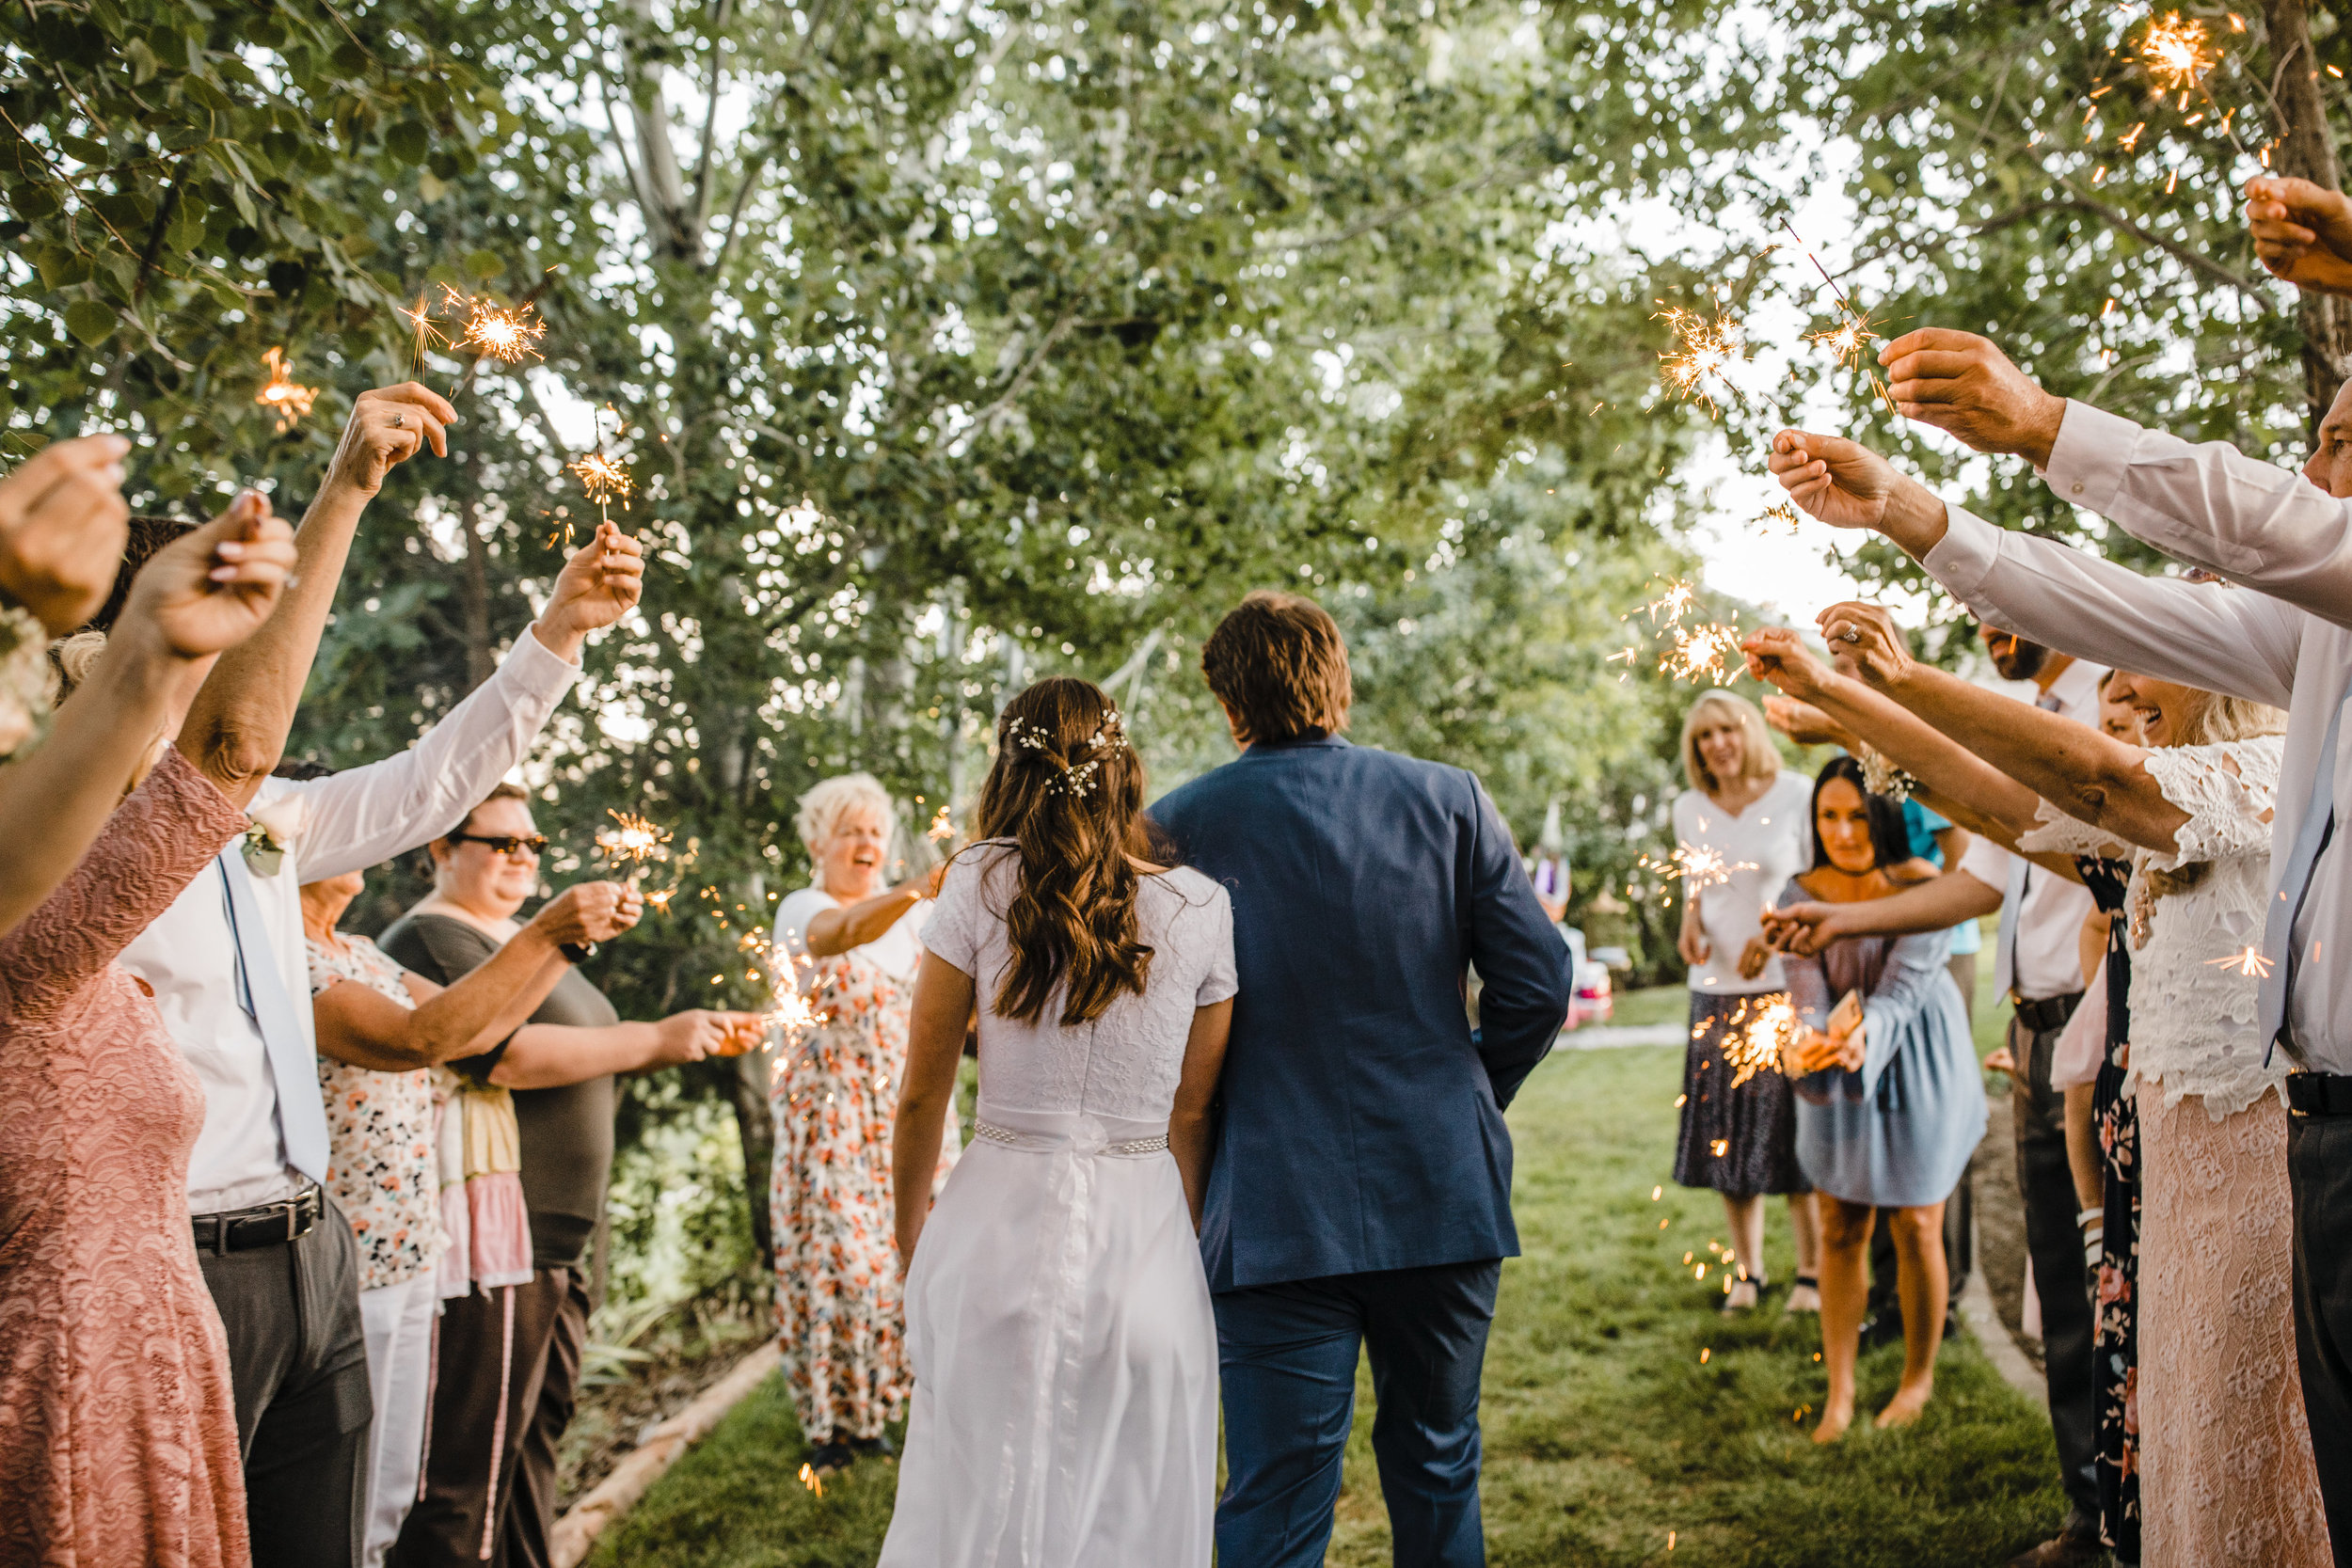 professional wedding photographer cache valley reception exit sparklers outdoor wedding boho wedding hair